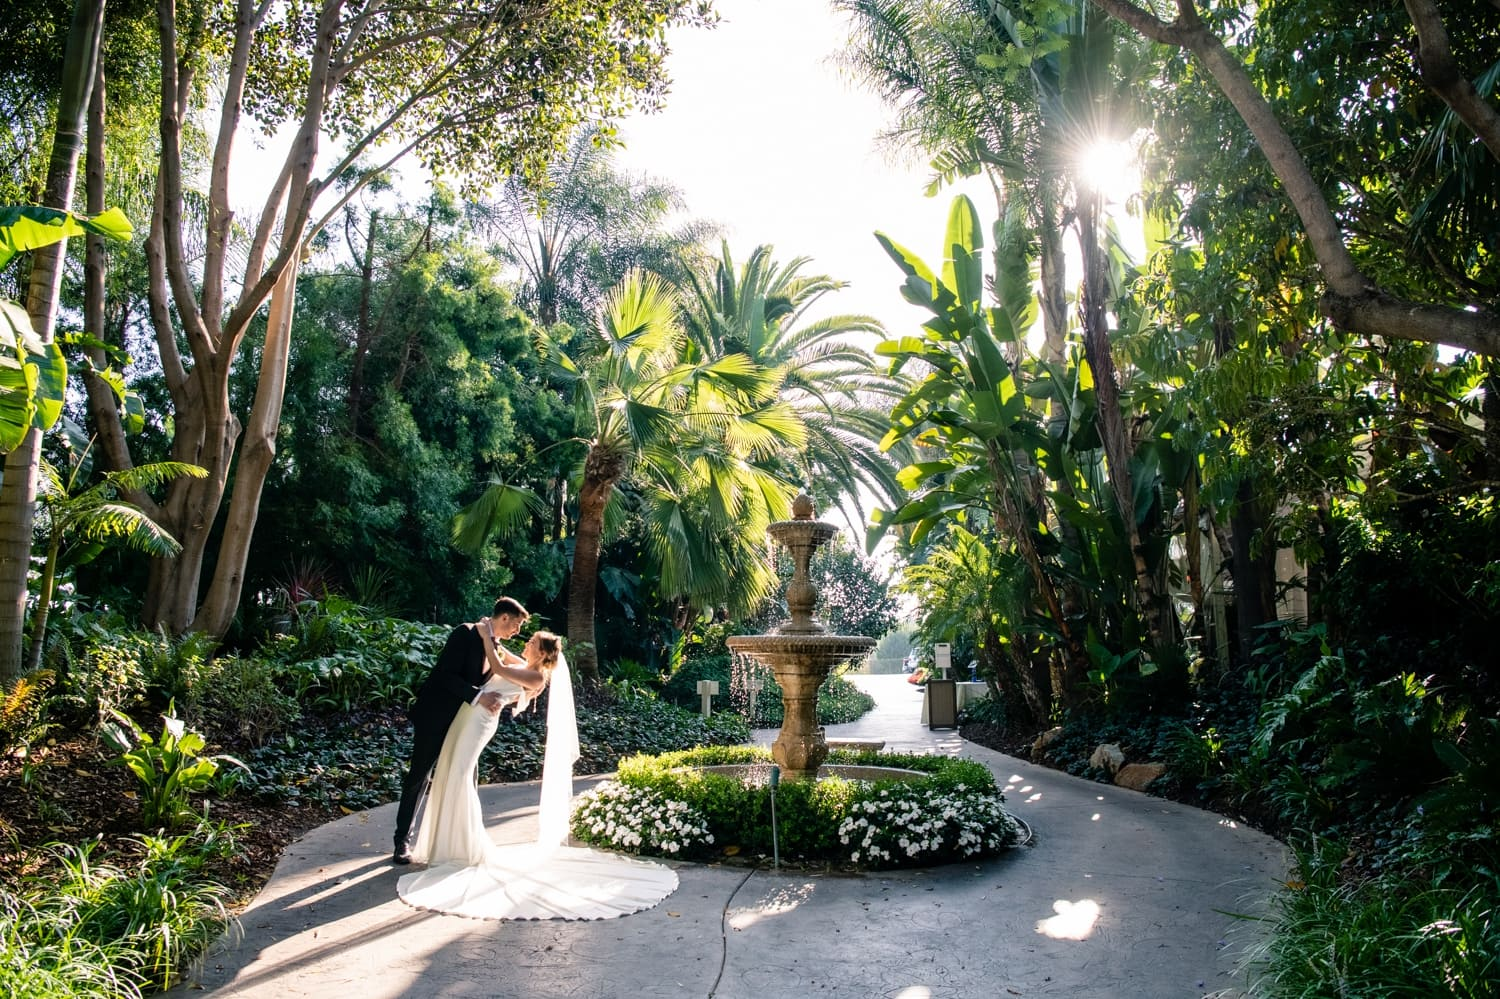 Bride and groom by the fountain in Arbor Terrace at Grand Tradition Estate in Fallbrook, CA.